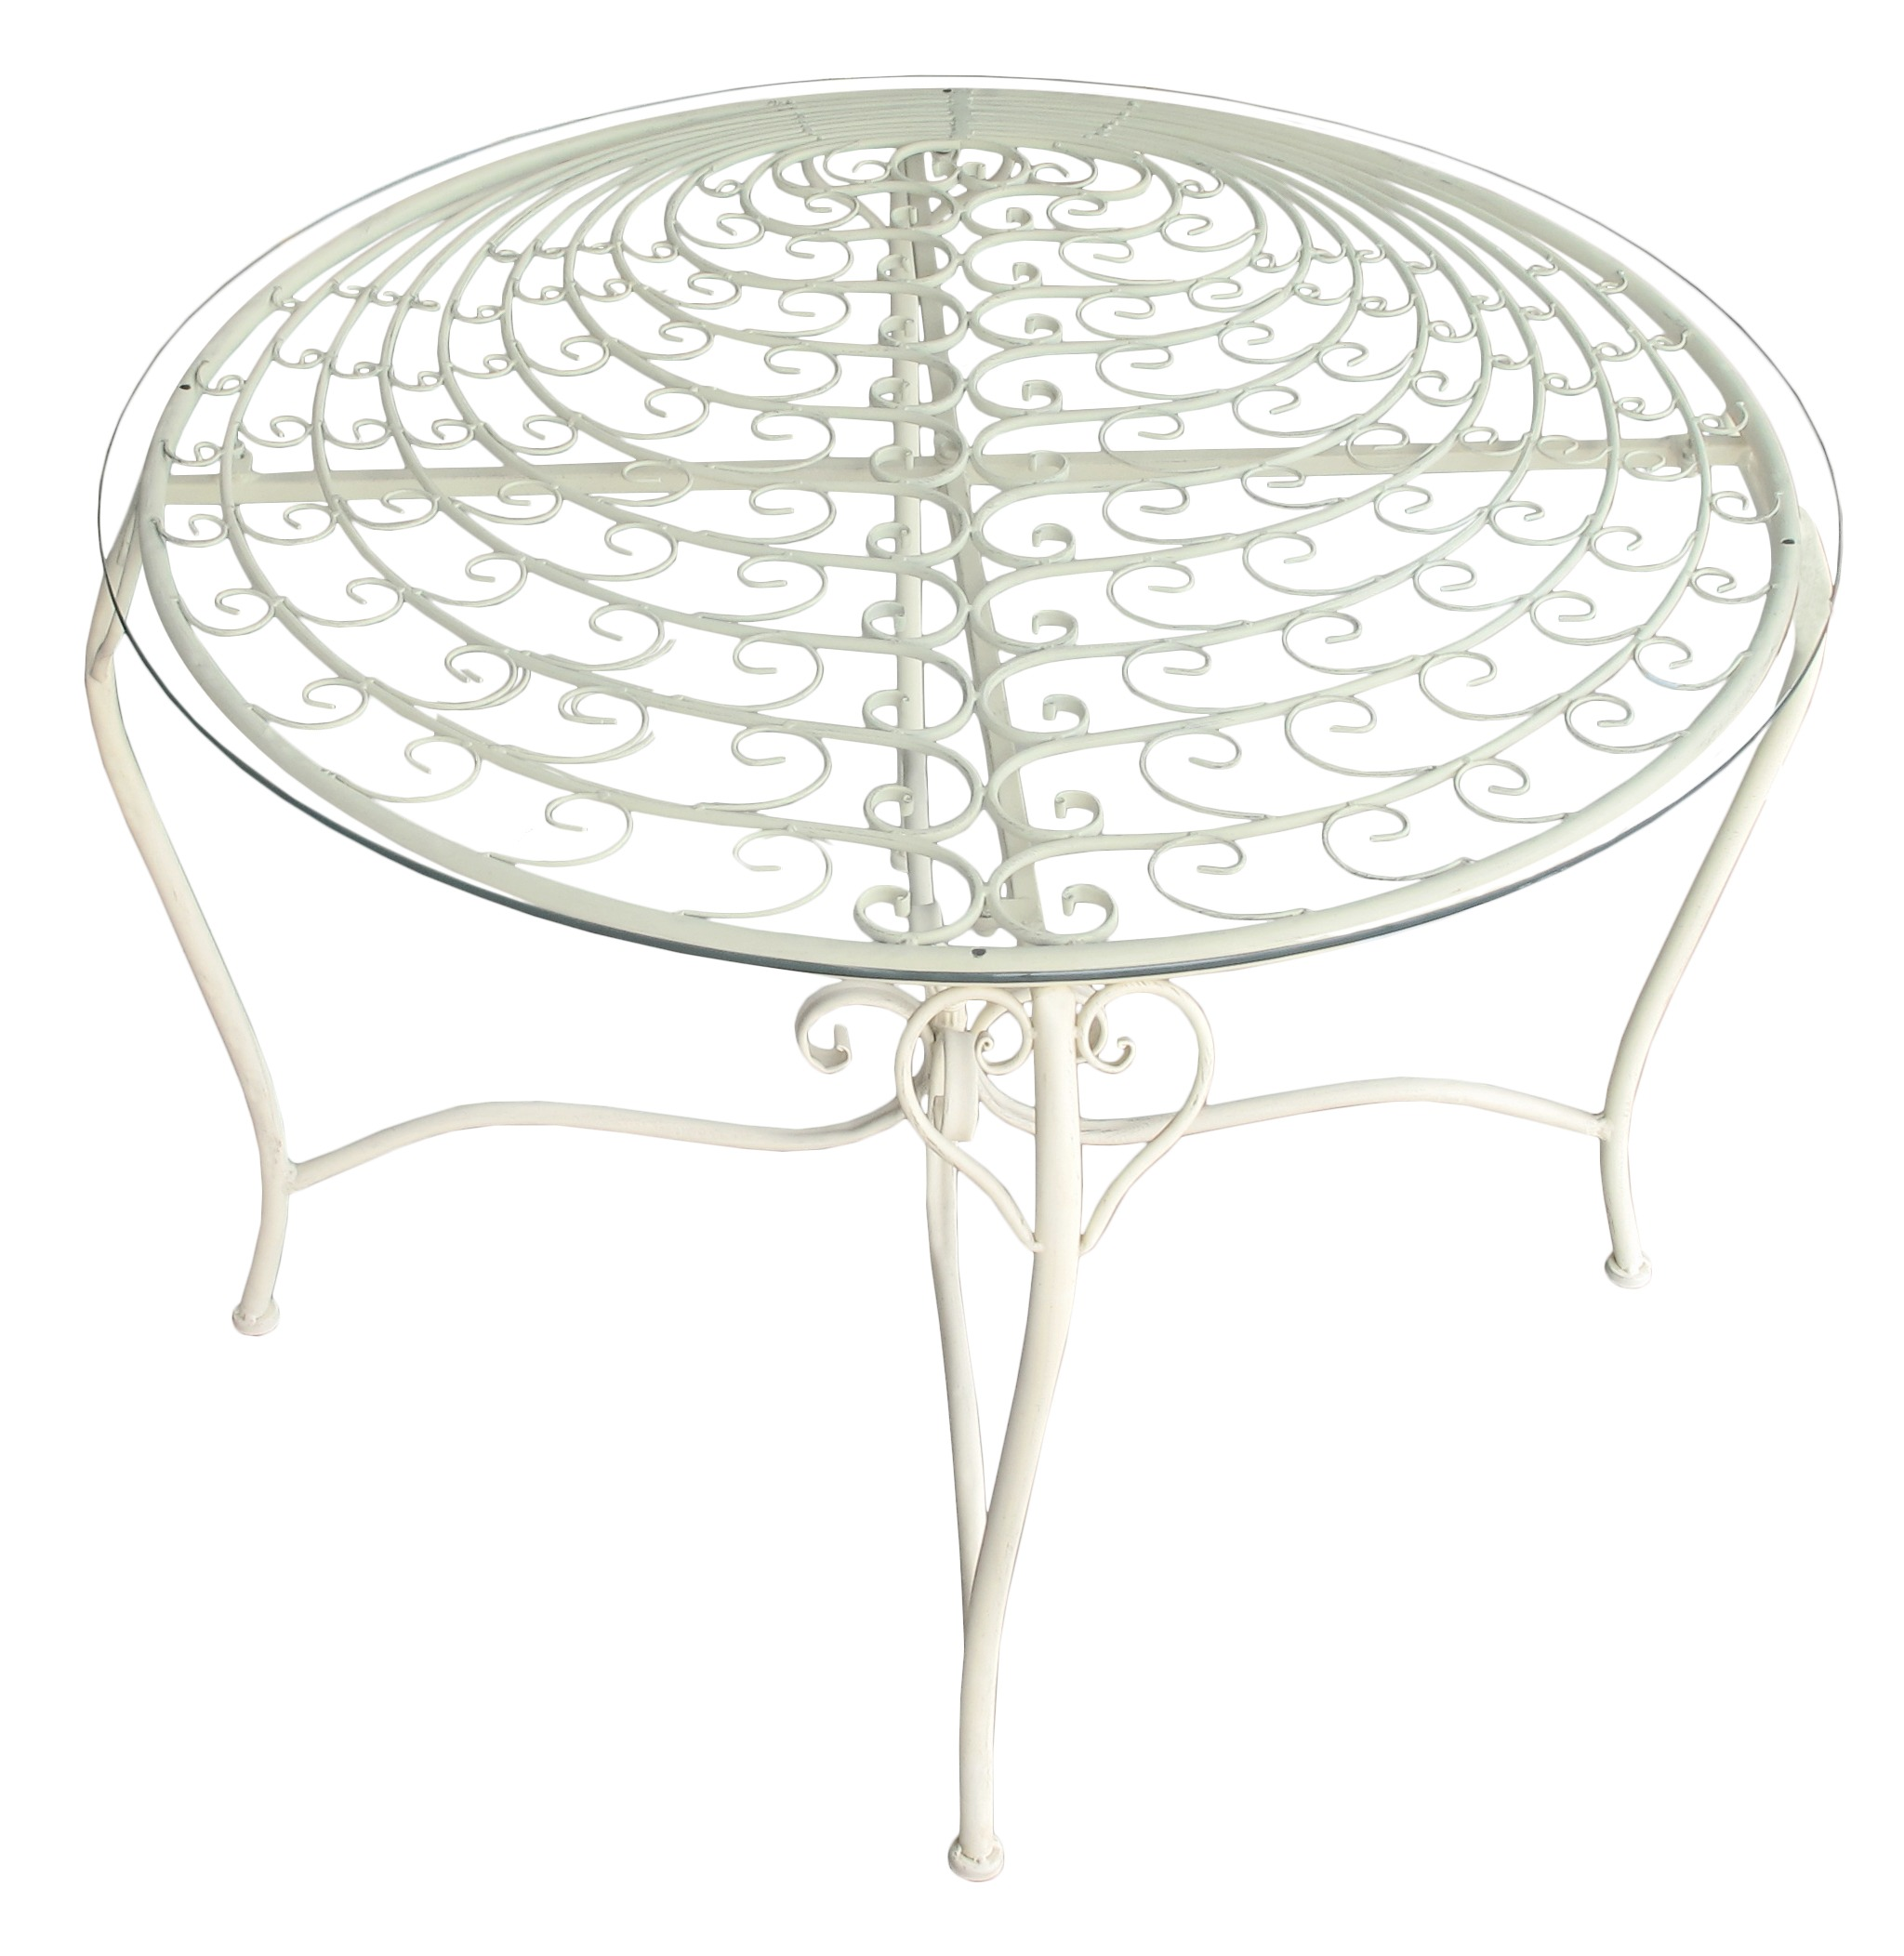 Wrought iron table collection peacock